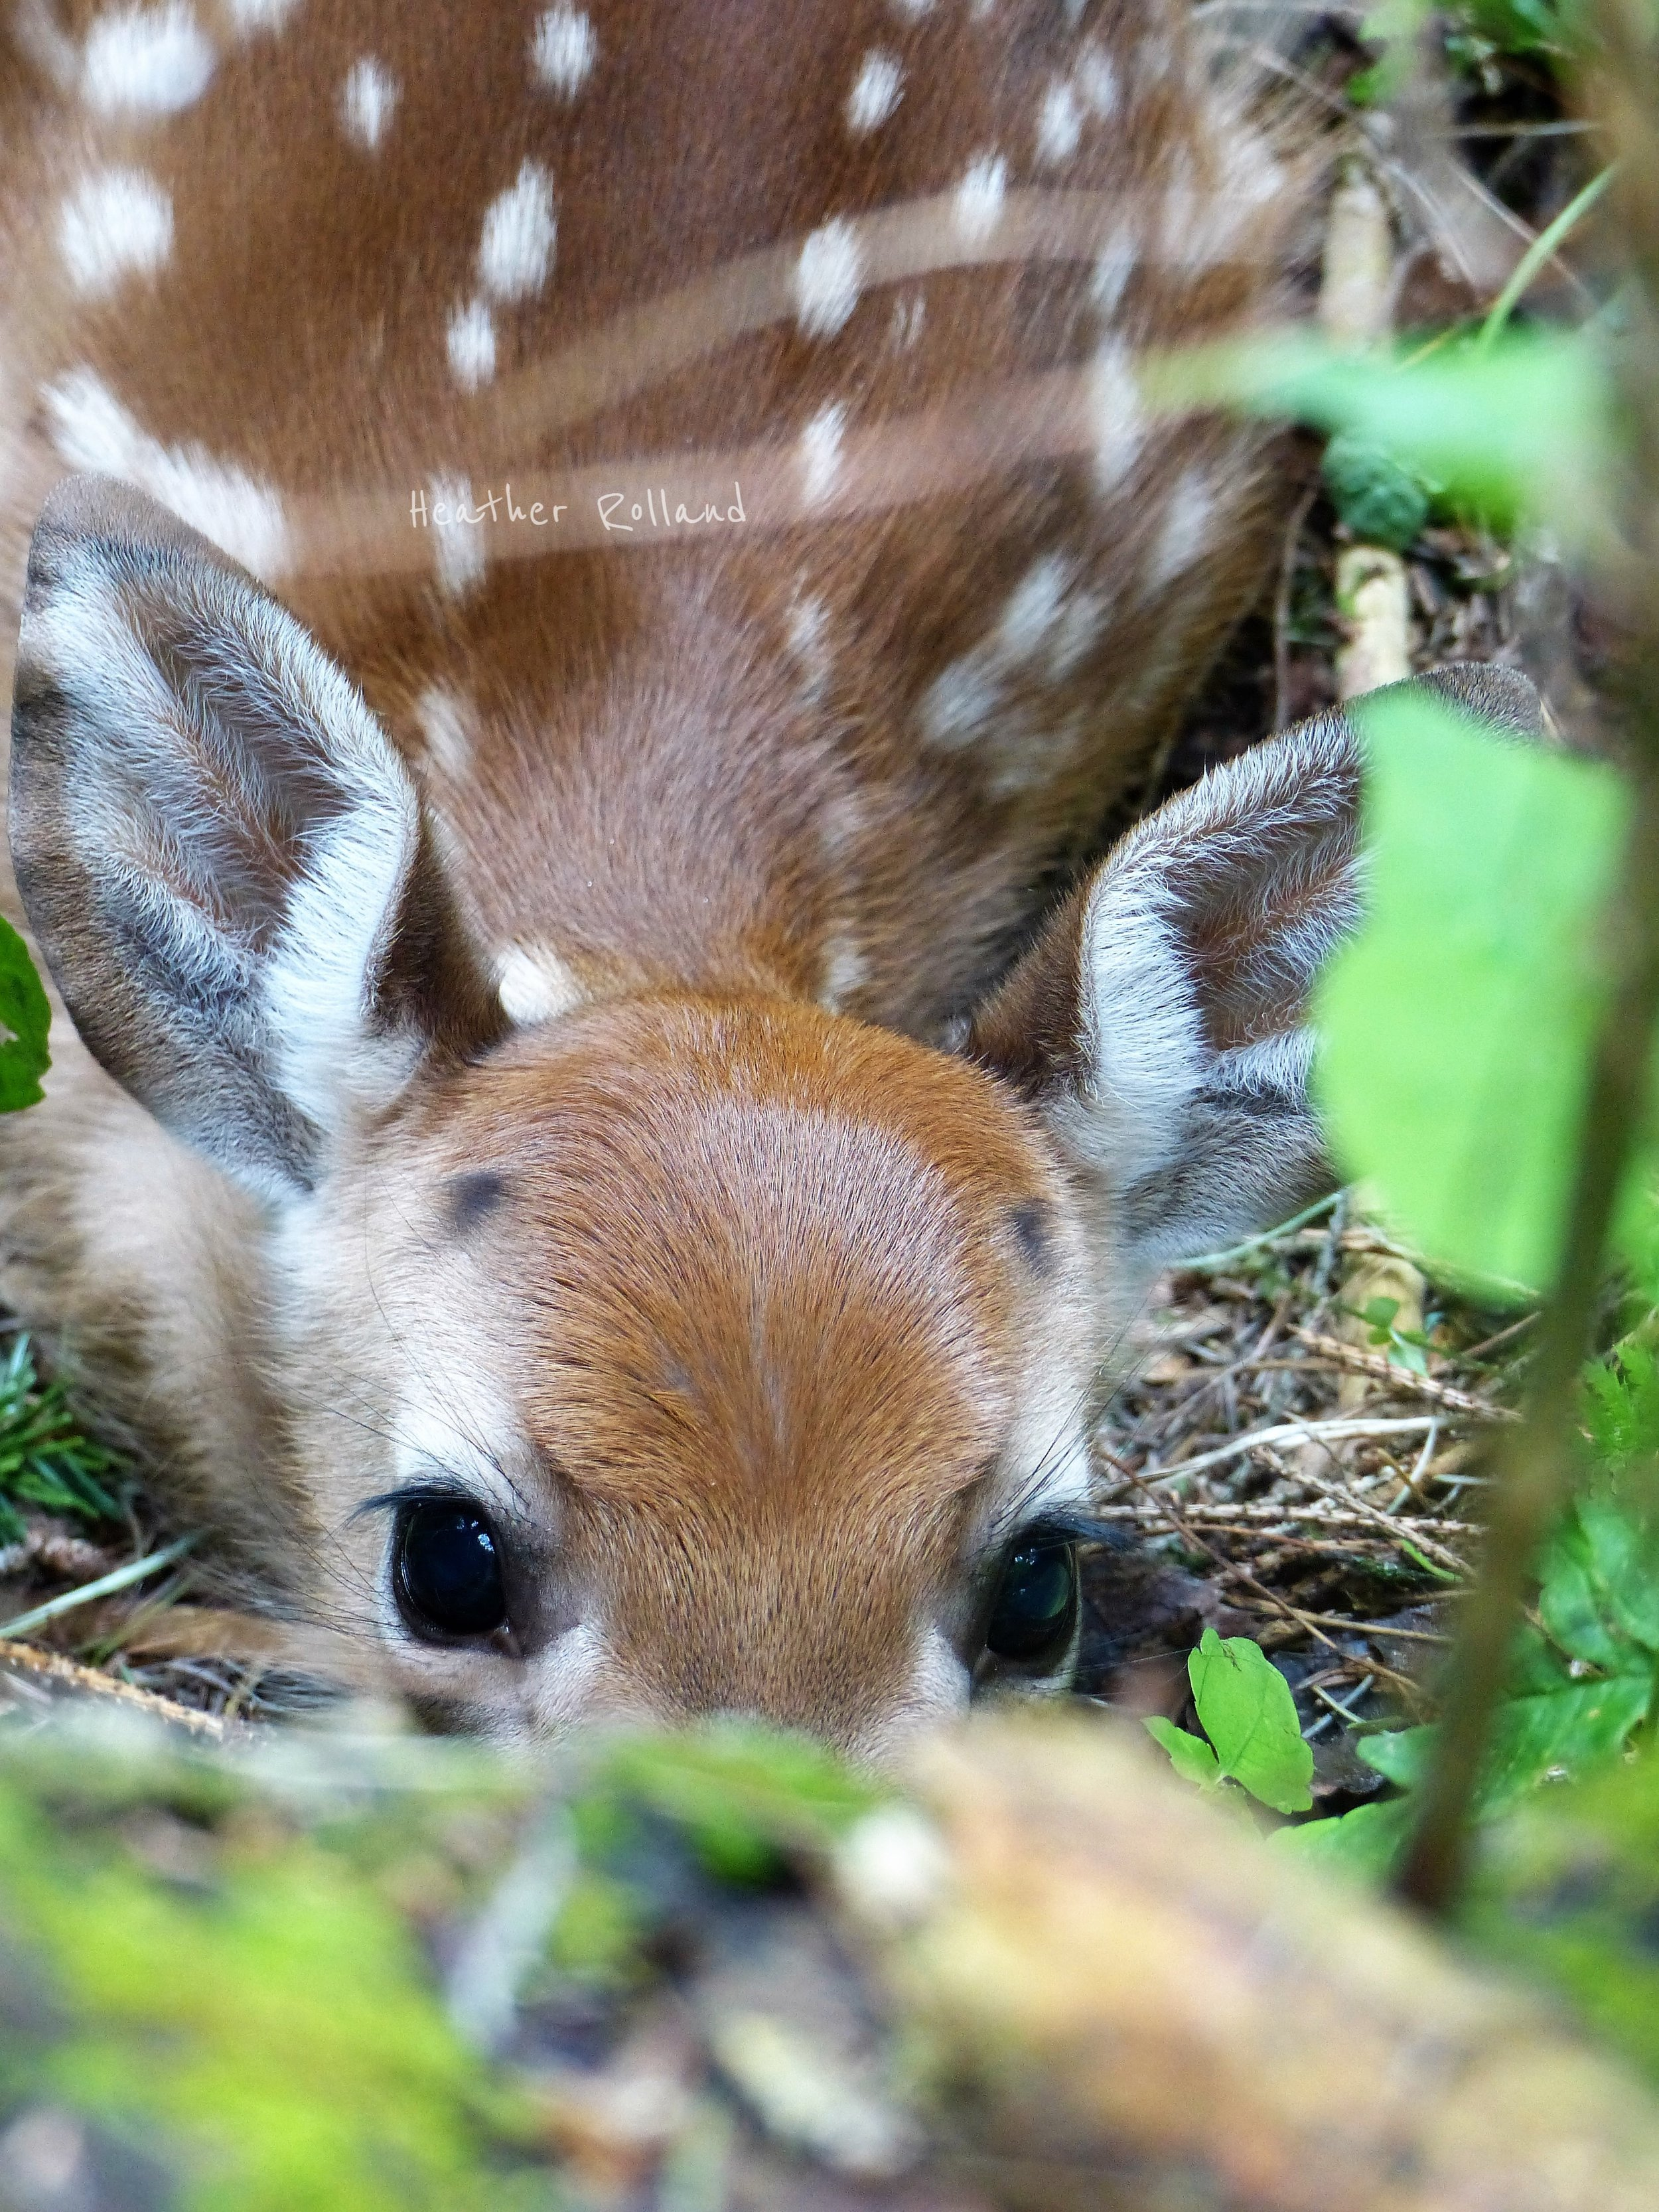 White-tailed deer fawn. Photographed in Delaware Wild Forest, Delaware County, NY.